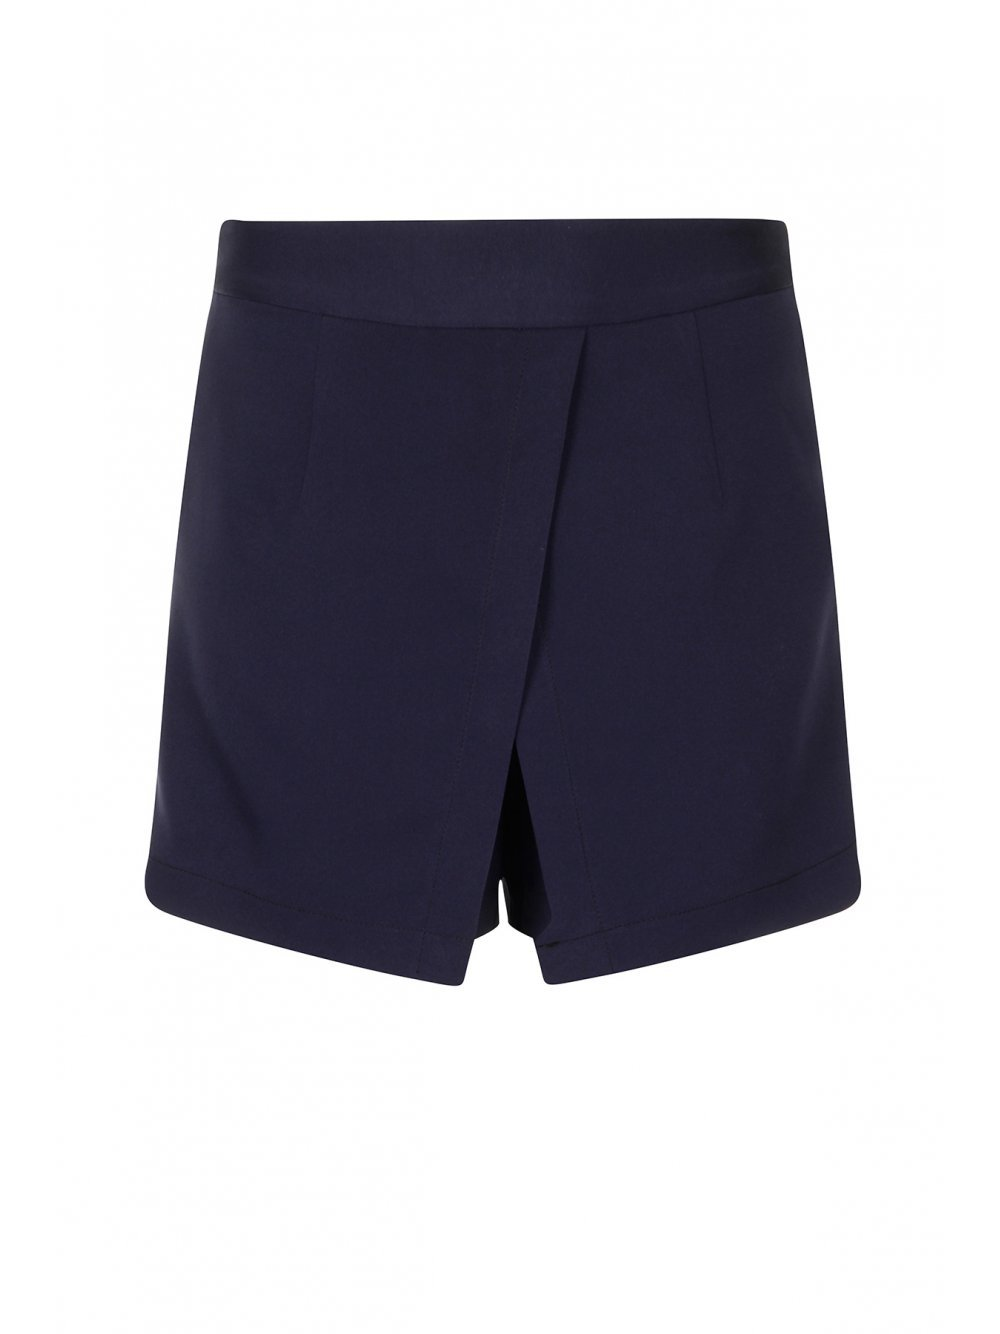 Navy Crossover Shorts